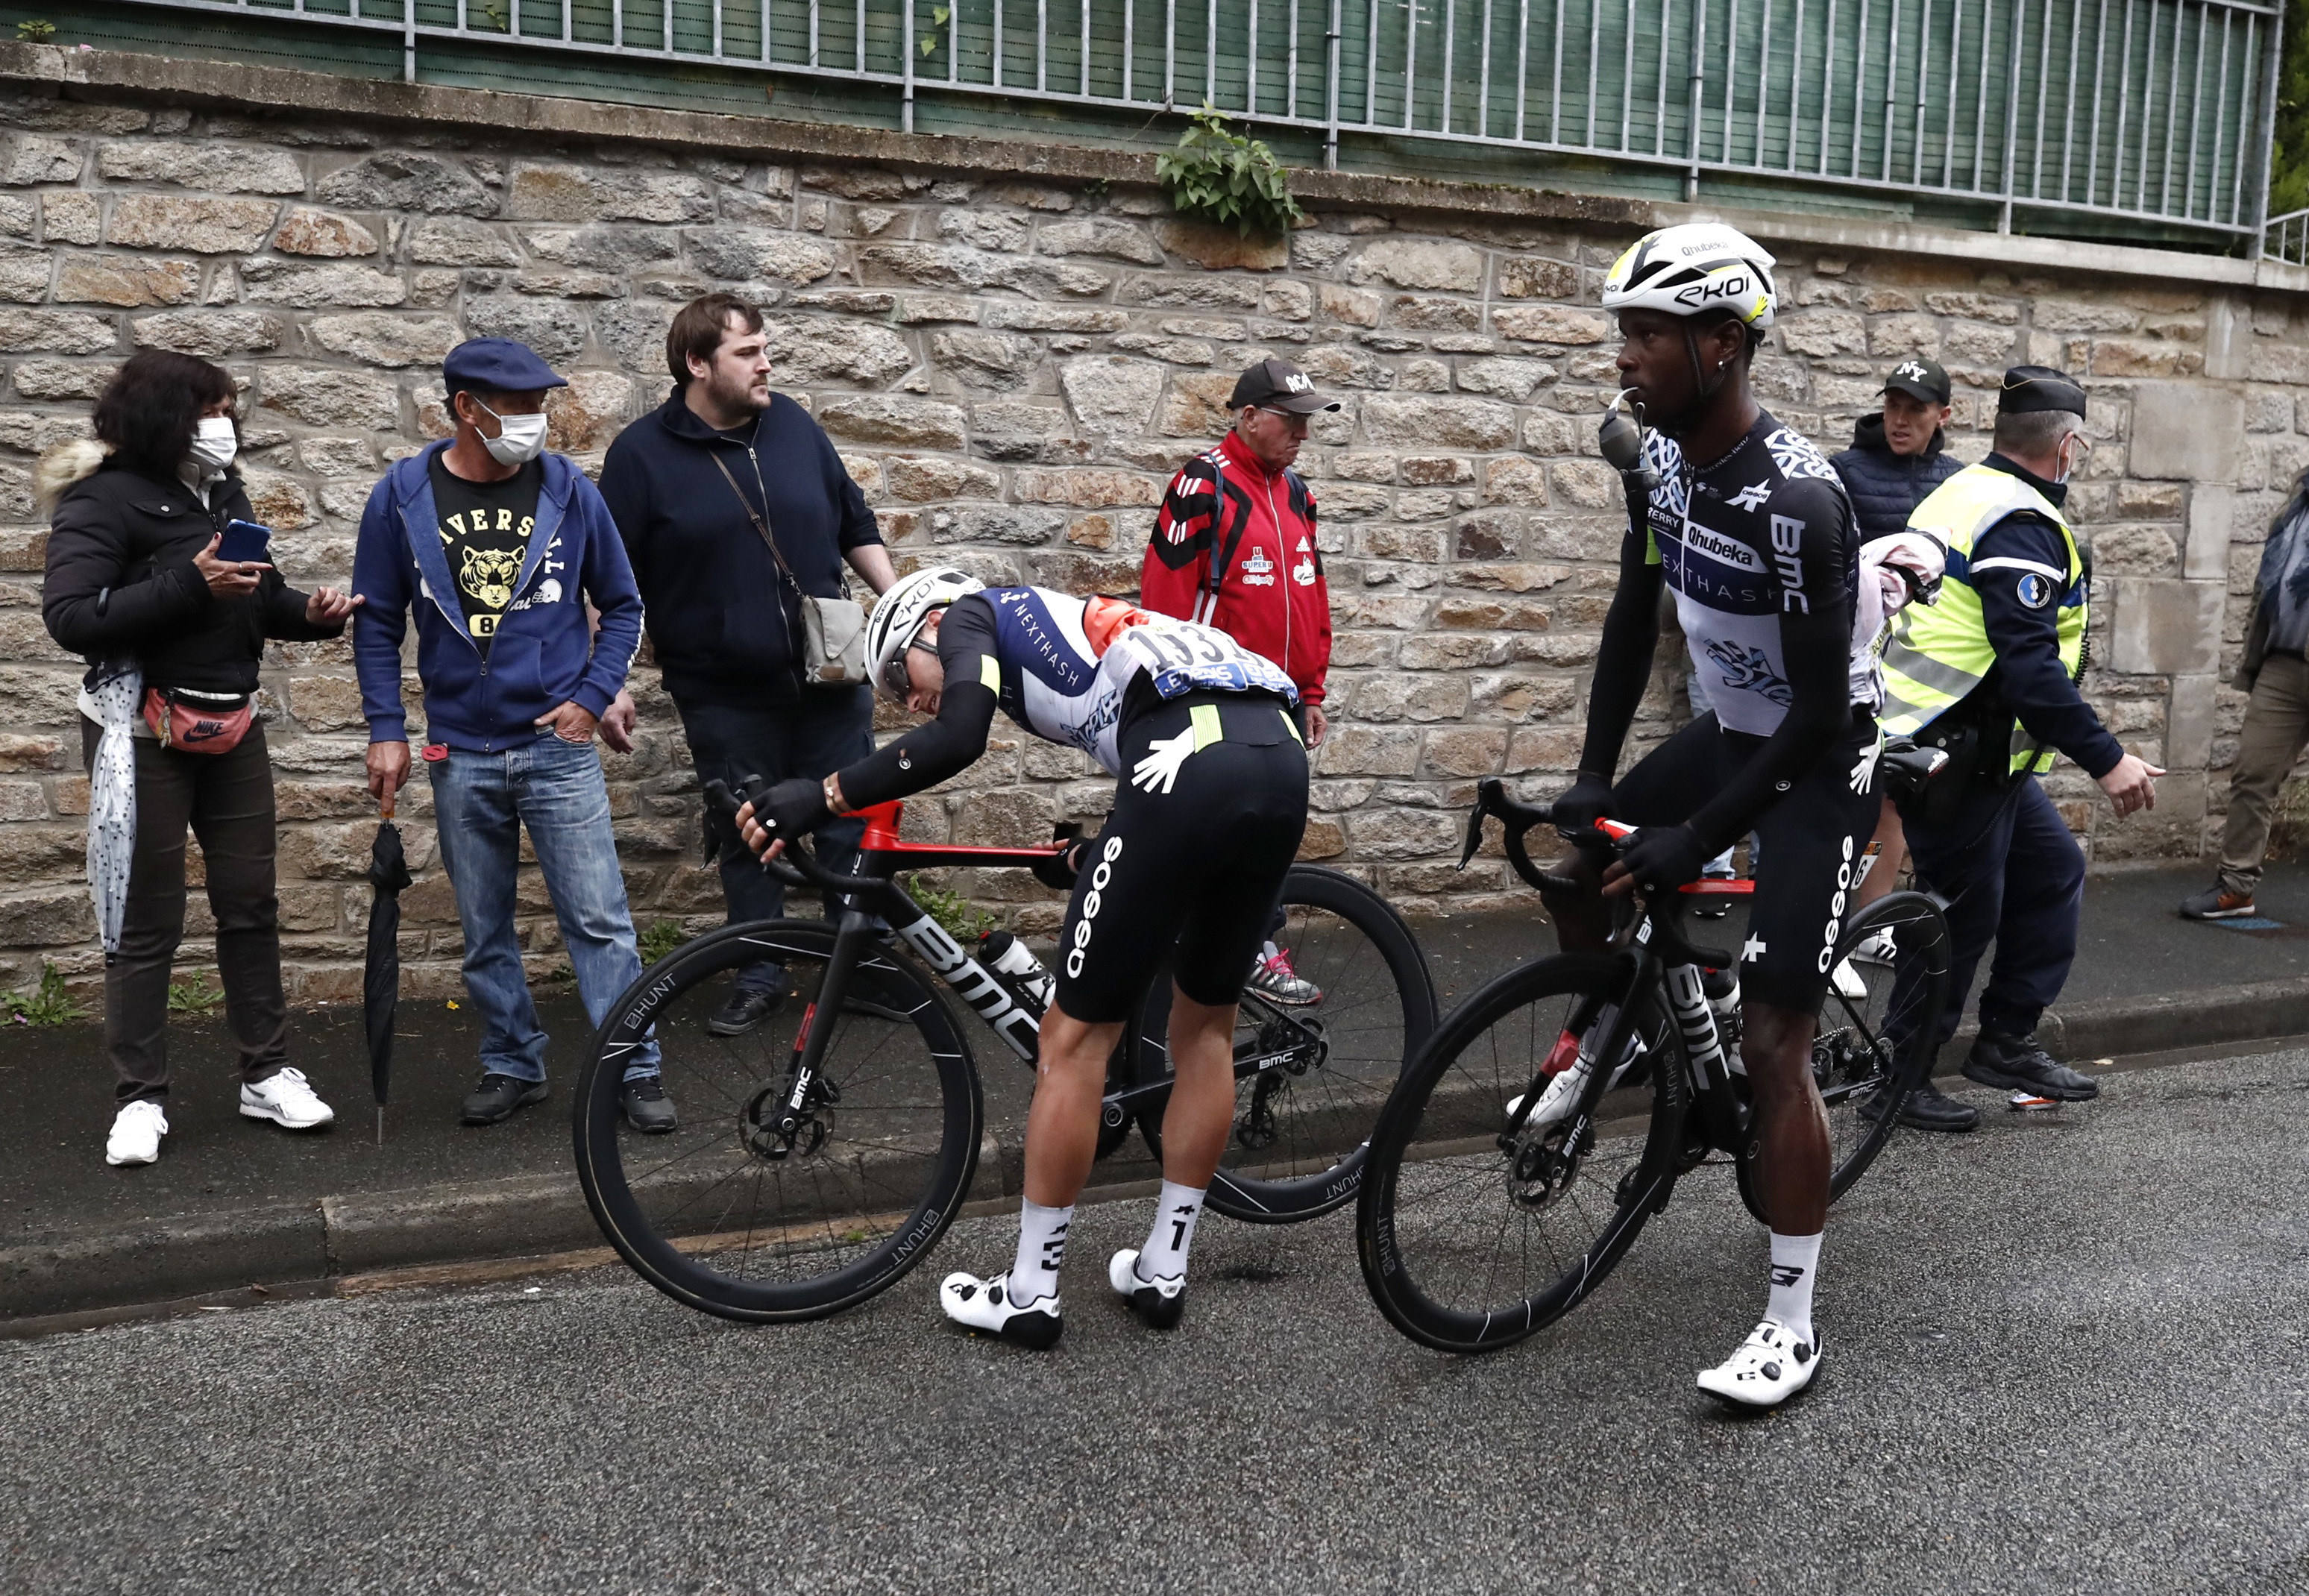 Cycling - Tour de France - Stage 3 -  Lorient to Pontivy - France - June 28, 2021 Team Qhubeka NextHash rider Sean Bennett of the U.S. and rider Nic Dlamini of South Africa stopped to check the bike during stage 3